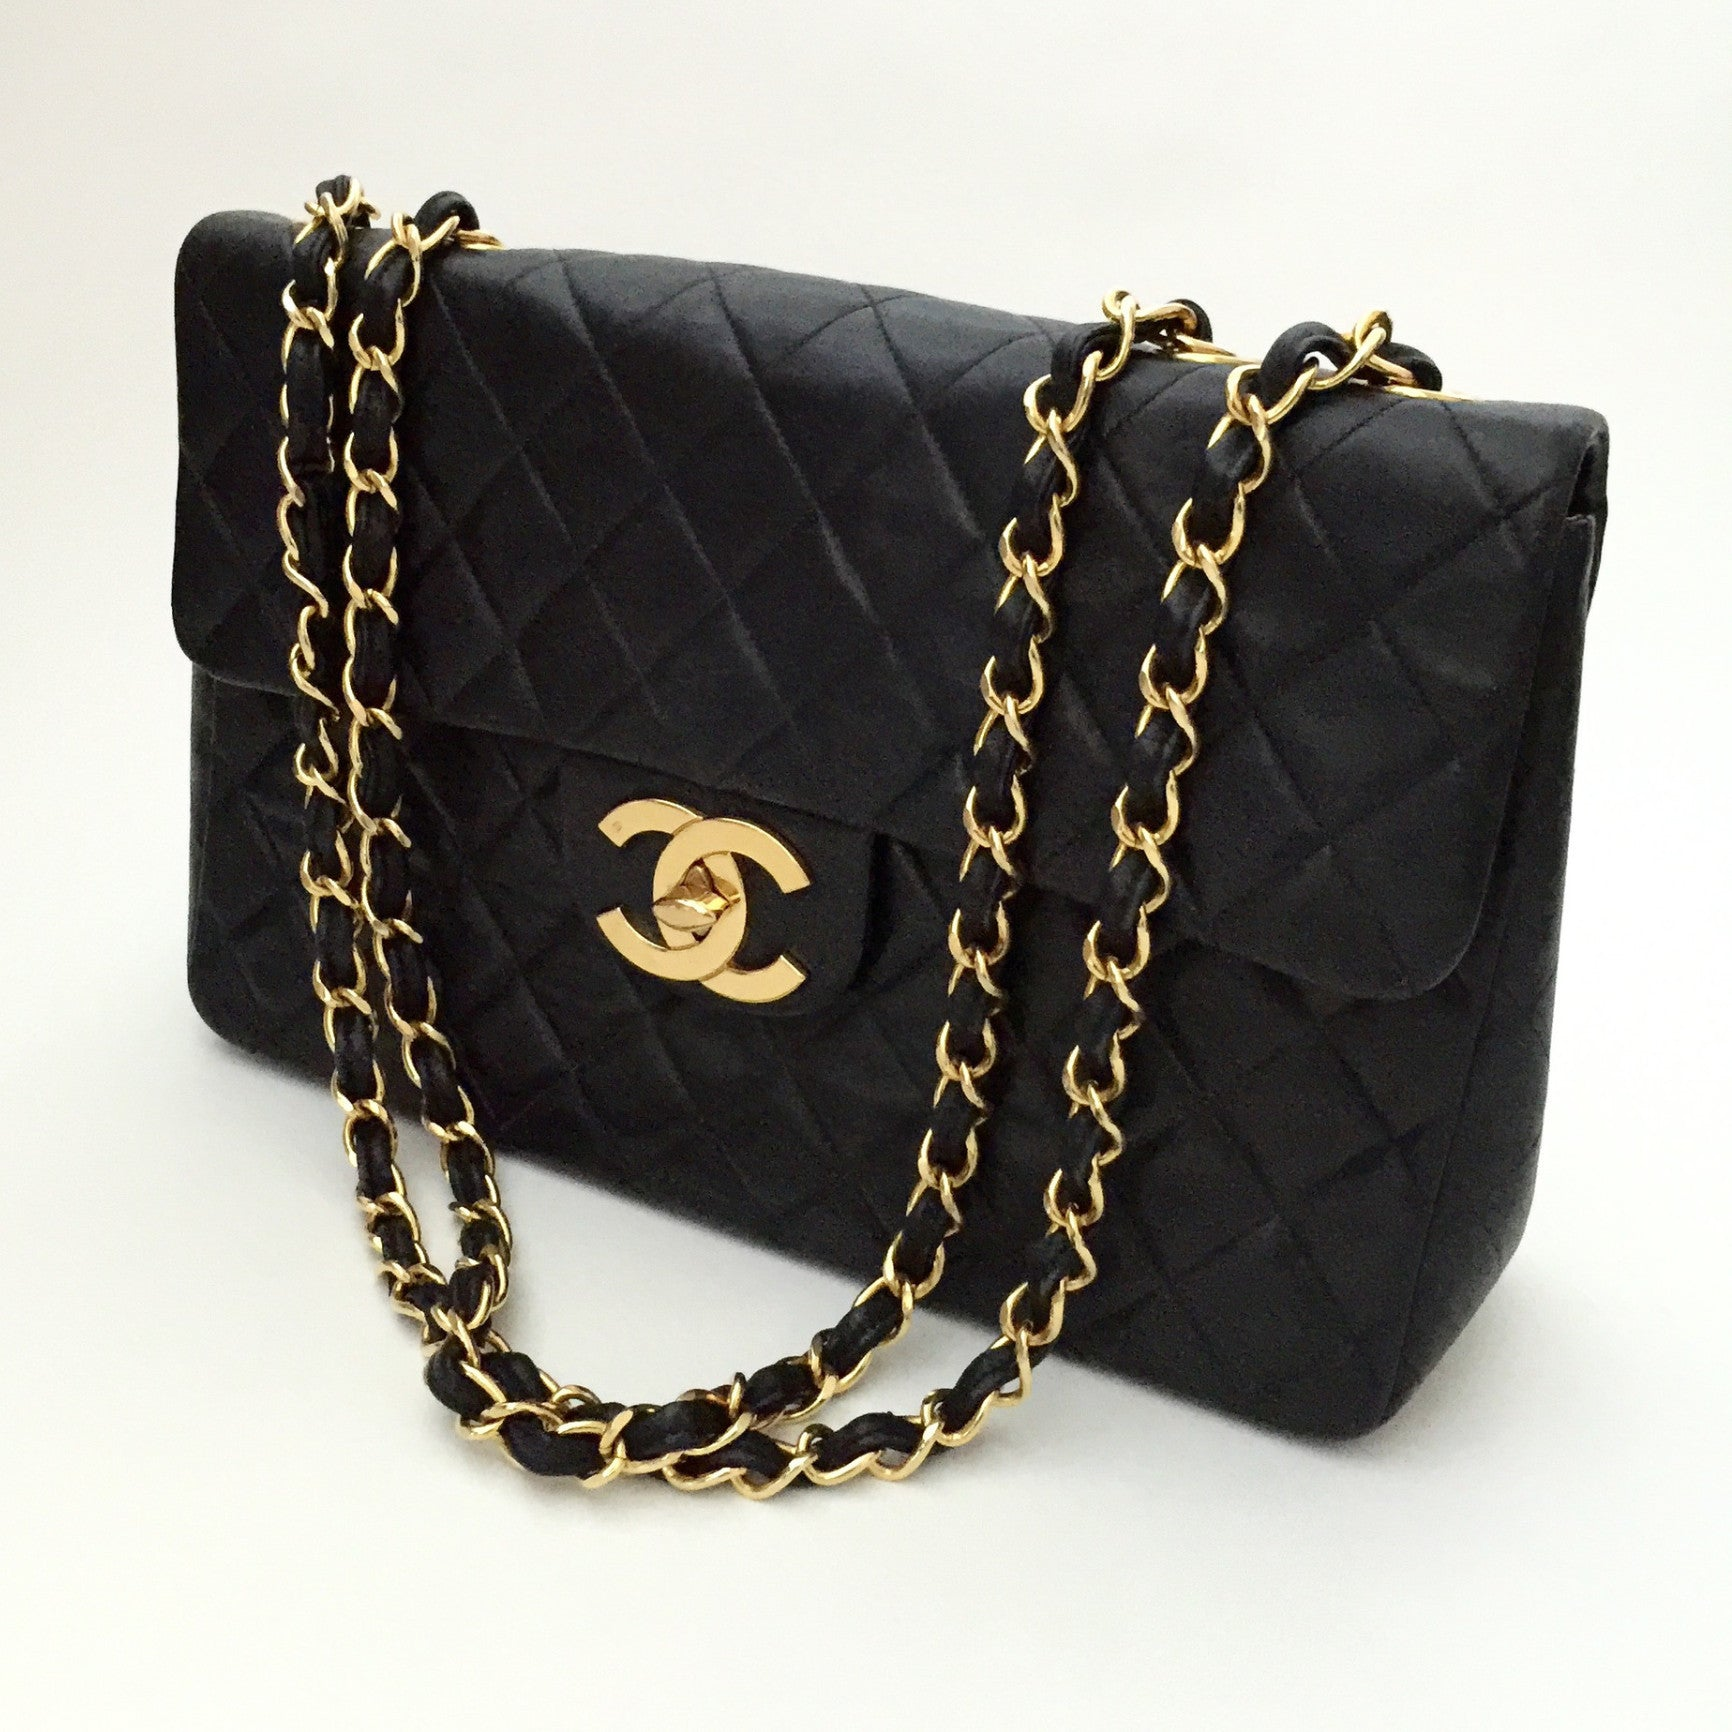 Authentic CHANEL Jumbo Vintage Bag